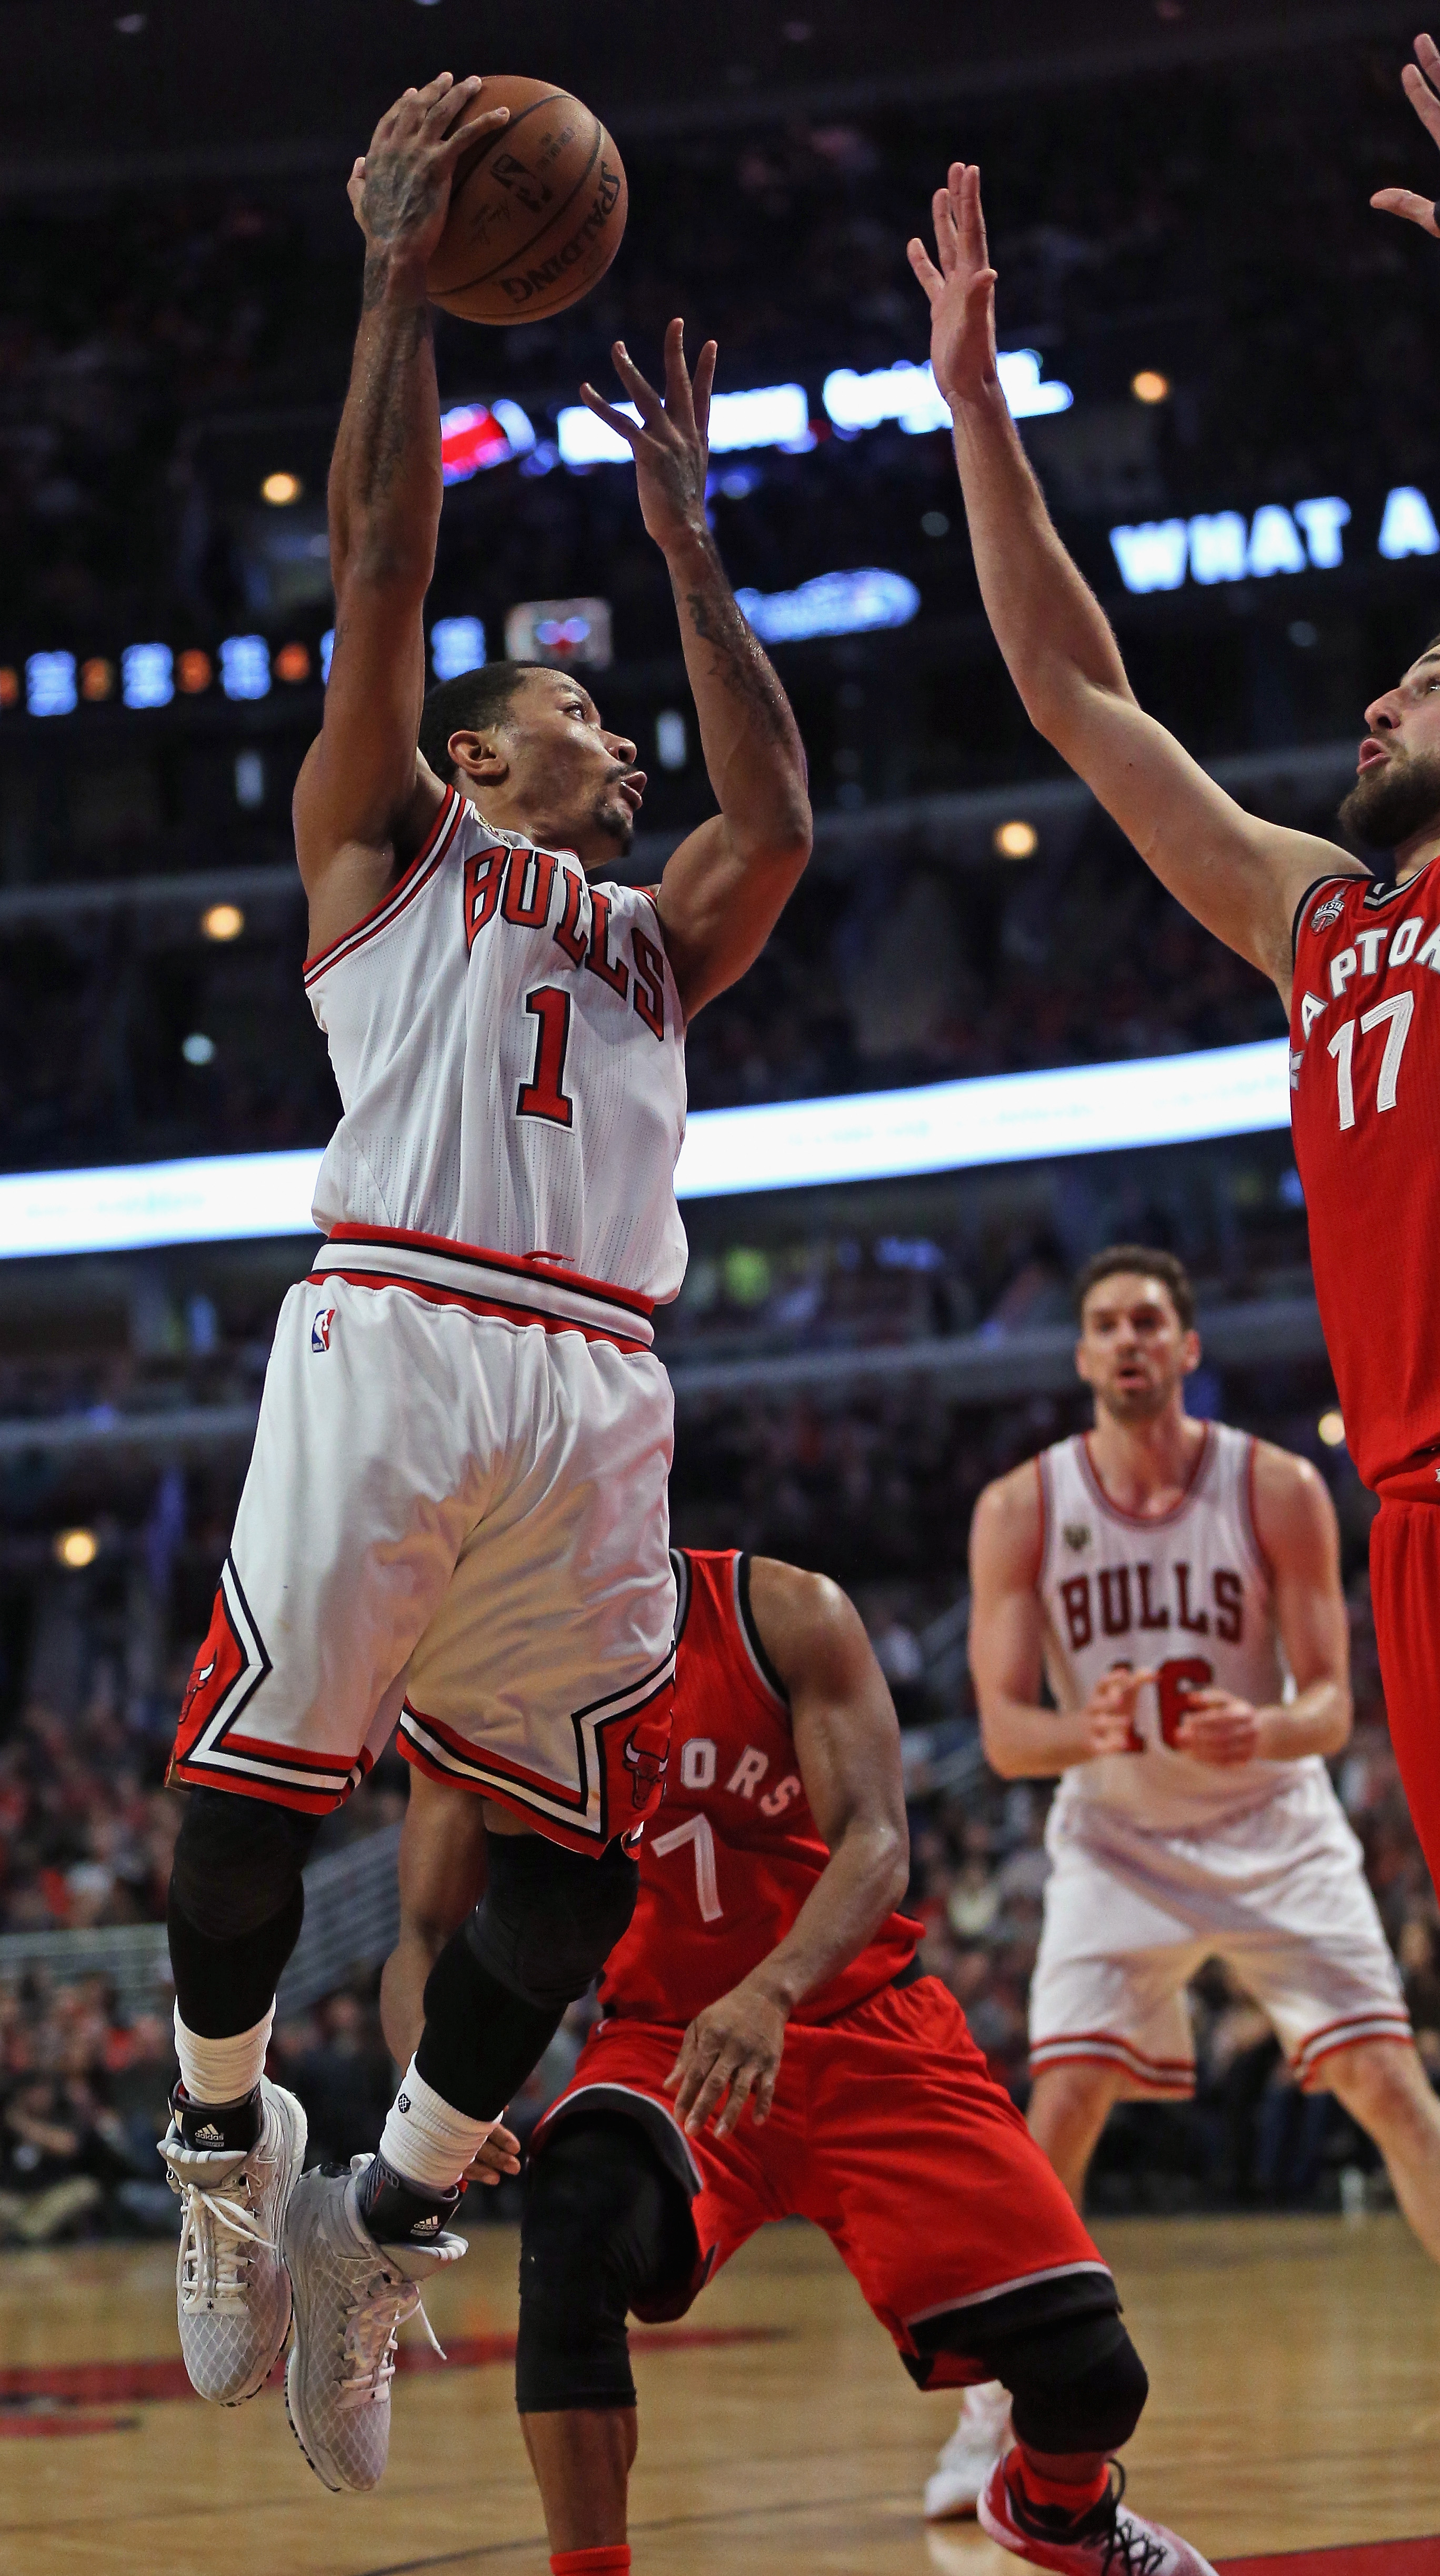 CHICAGO, IL - DECEMBER 28: Derrick Rose #1 of the Chicago Bulls leaps to pass over Jonas Valanciunas #17 of the Toronto Raptors at the United Center on December 28, 2015 in Chicago, Illinois. The Bulls defeated the Raptors 104-97. (Photo by Jonathan Danie